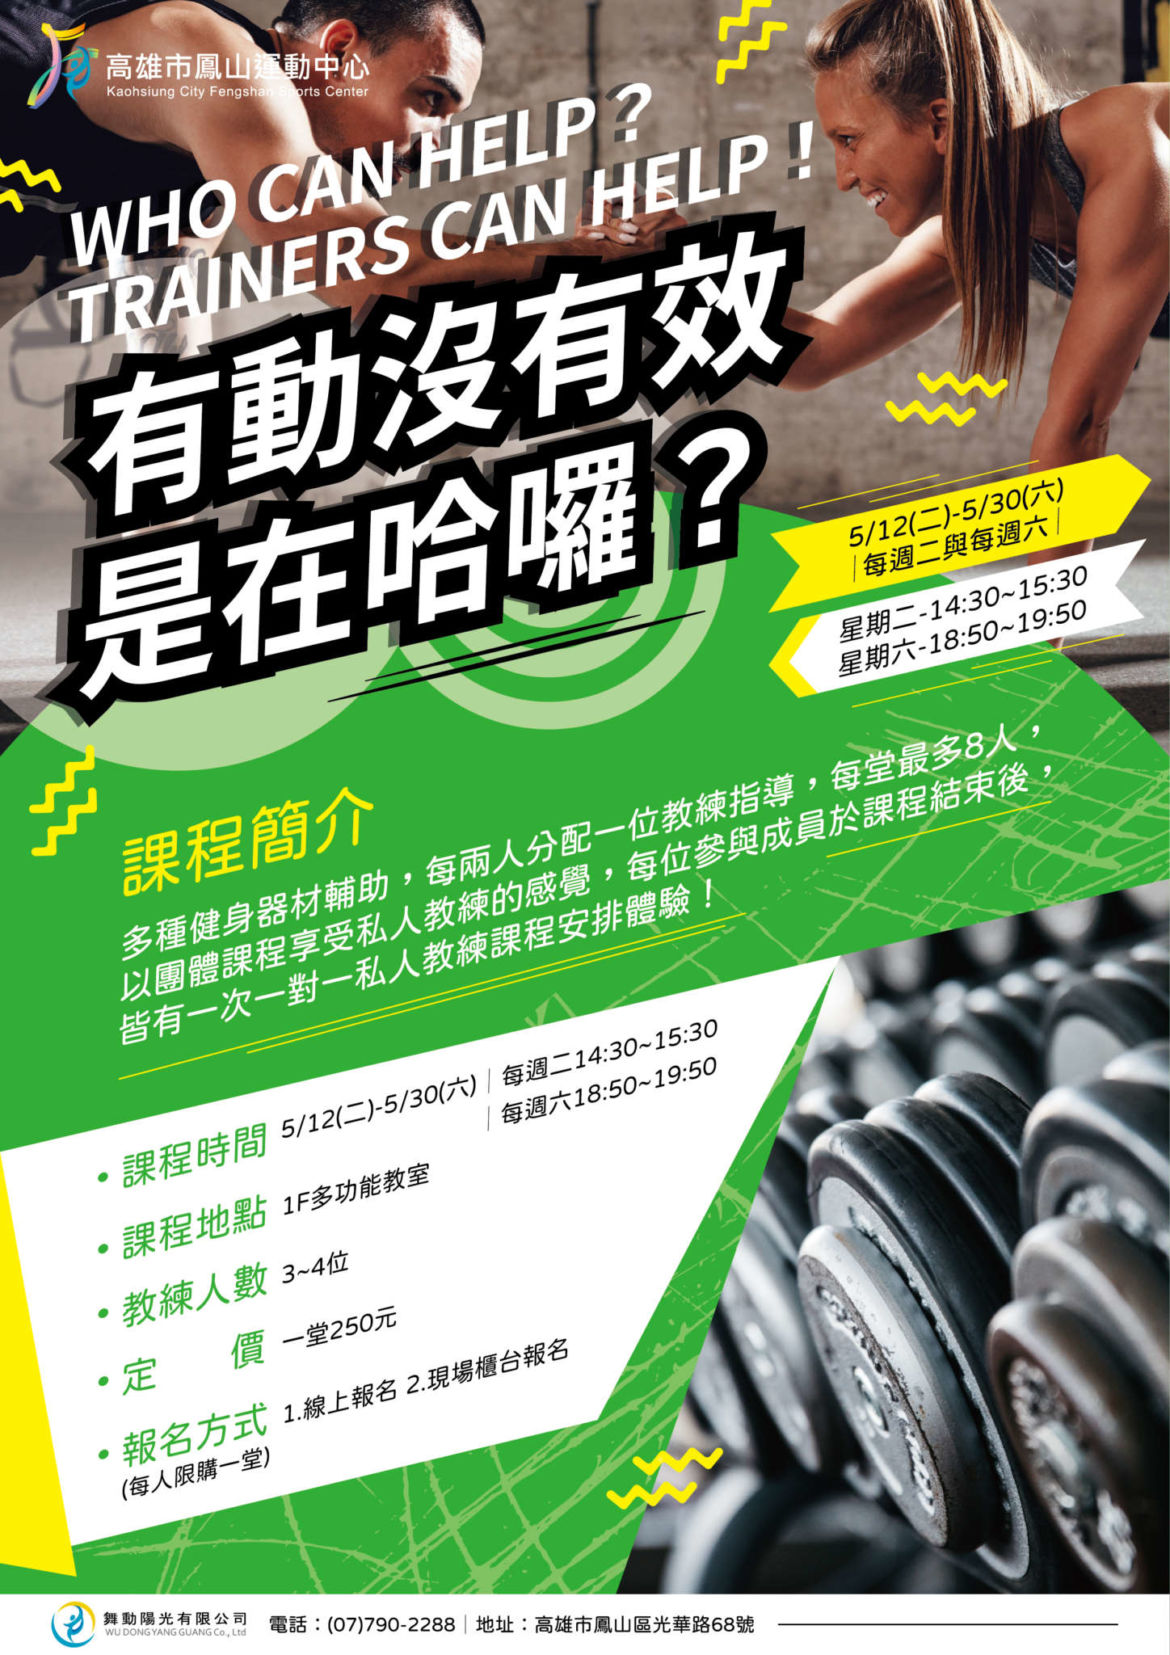 【WHO CAN HELP?TRAINERS CAN HELP!有動沒有效,是在哈囉?】